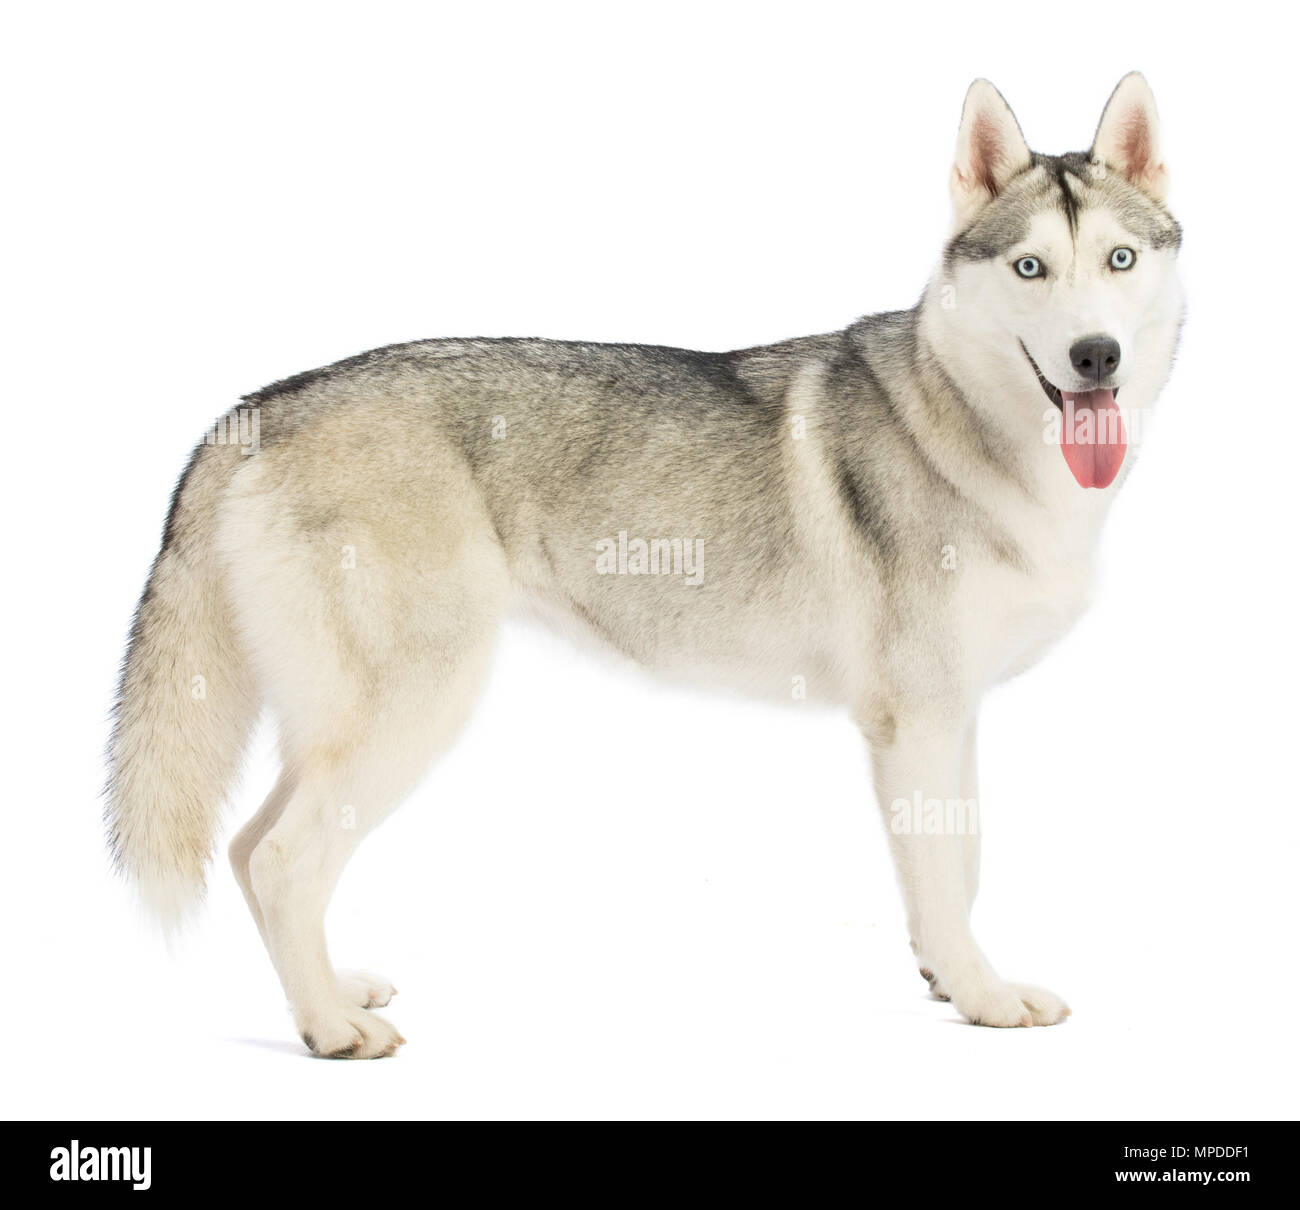 Siberian Husky standing in profile looking from the front on white background - Stock Image